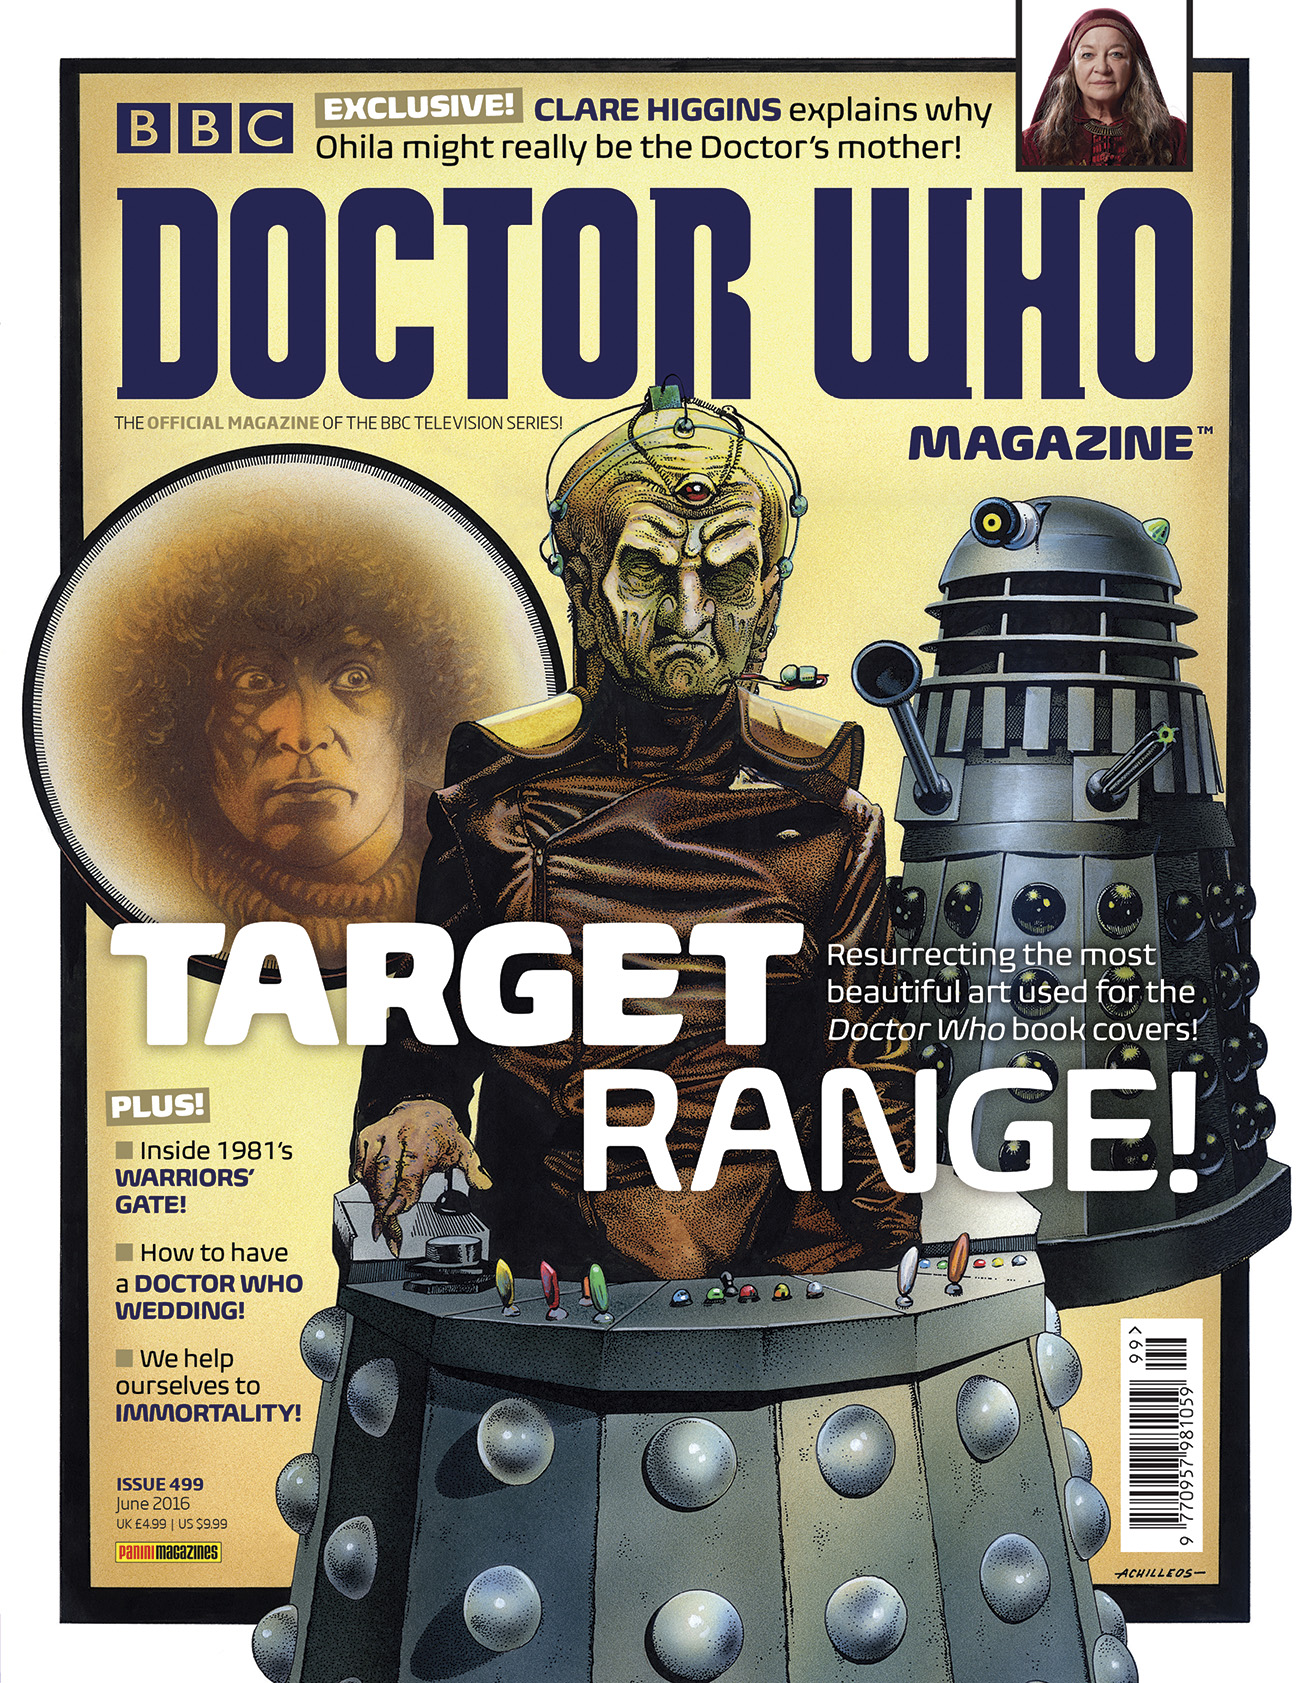 Doctor Who Magazine Issue 499 (Credit: DWM)